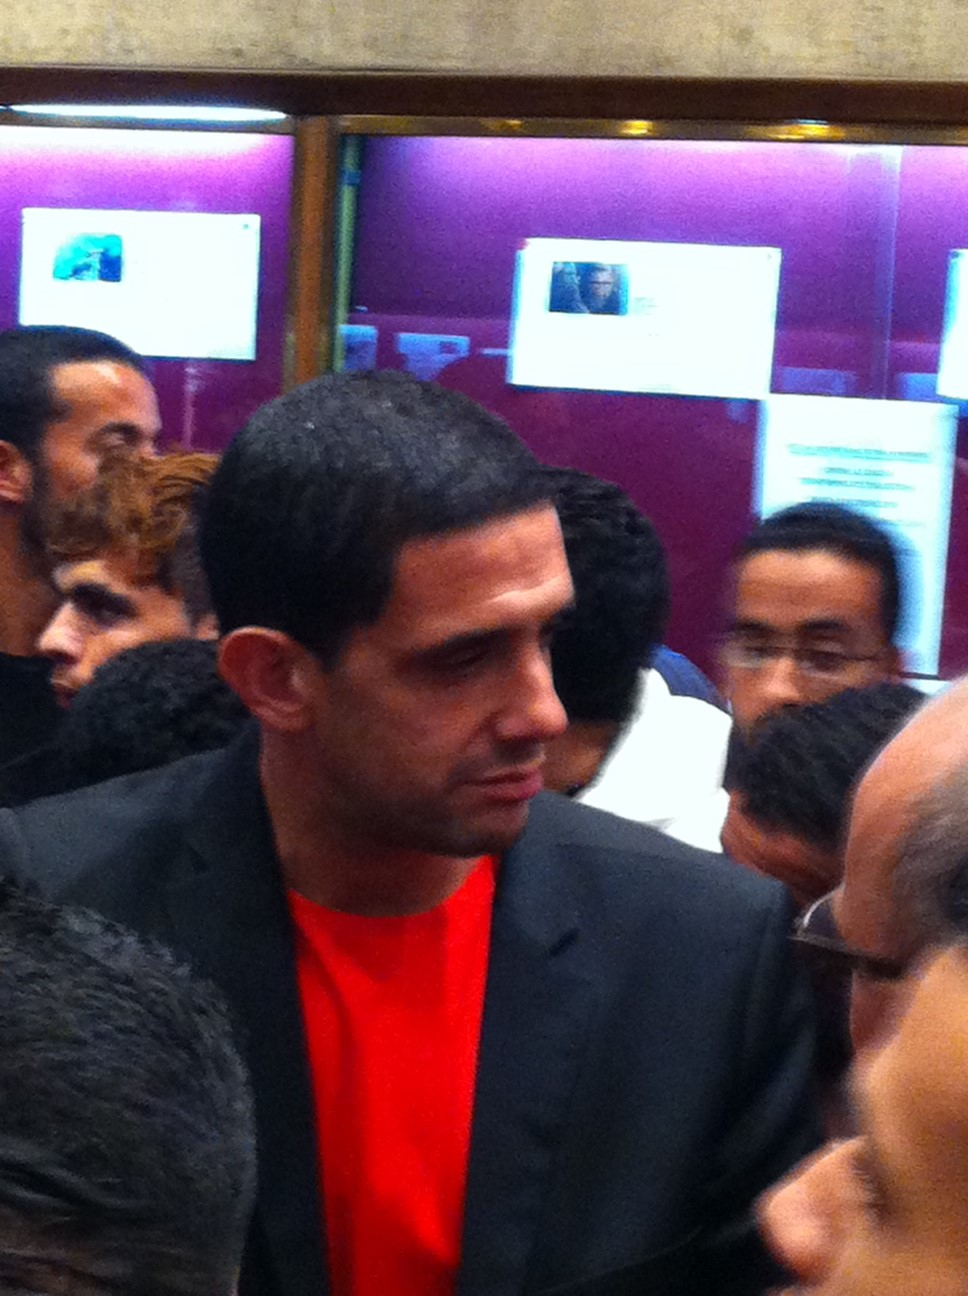 Hicham Ayouch at the Marrakech Film Festival 2014